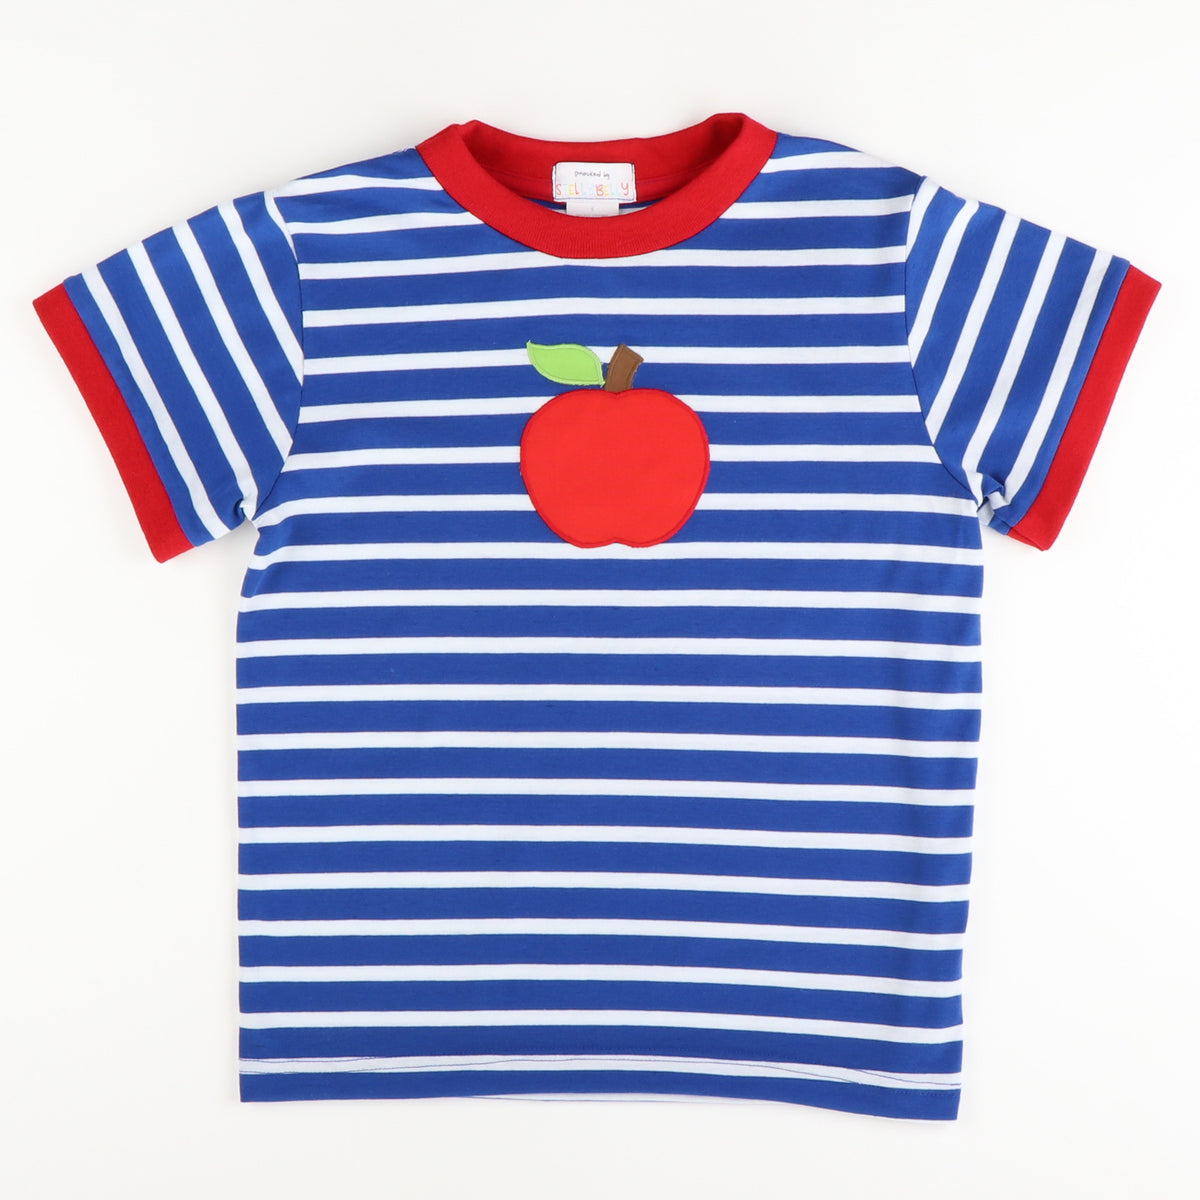 Appliquéd Apple Shirt - Blue Stripe